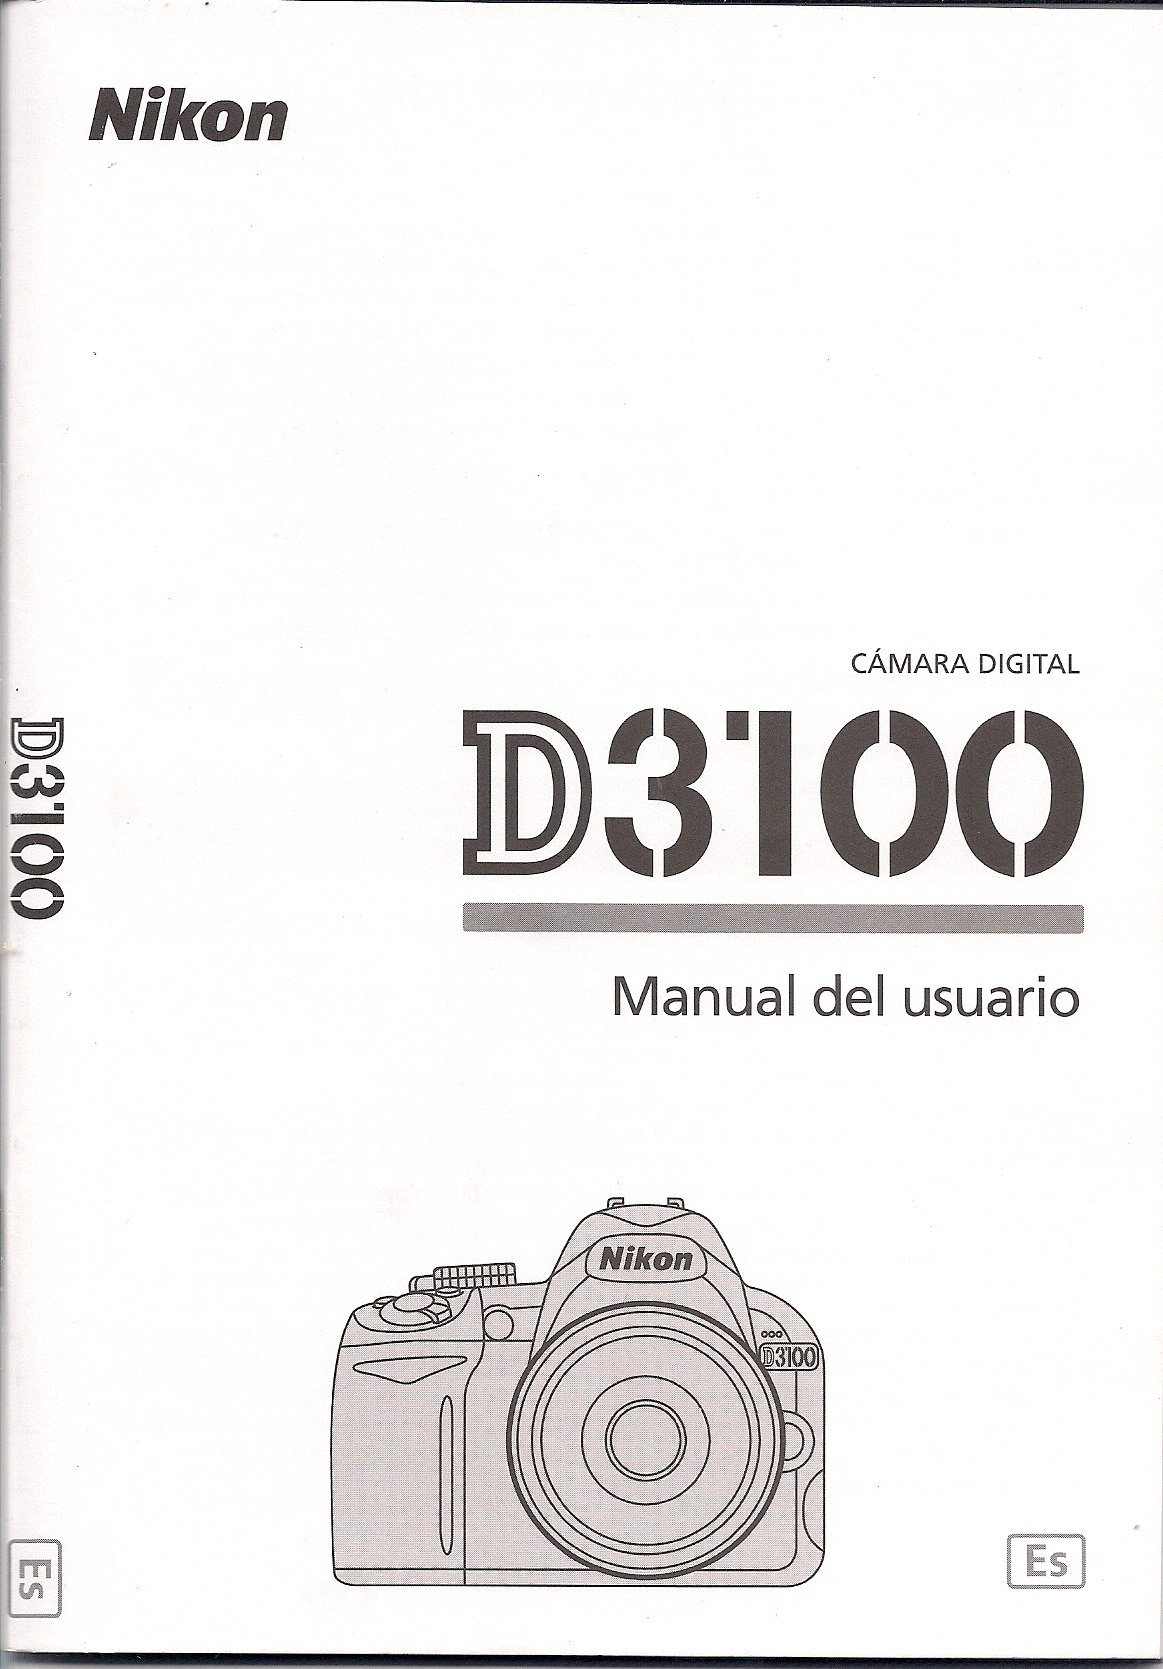 Nikon D3100 Camara Manual del usuario Español: Nikon: Amazon